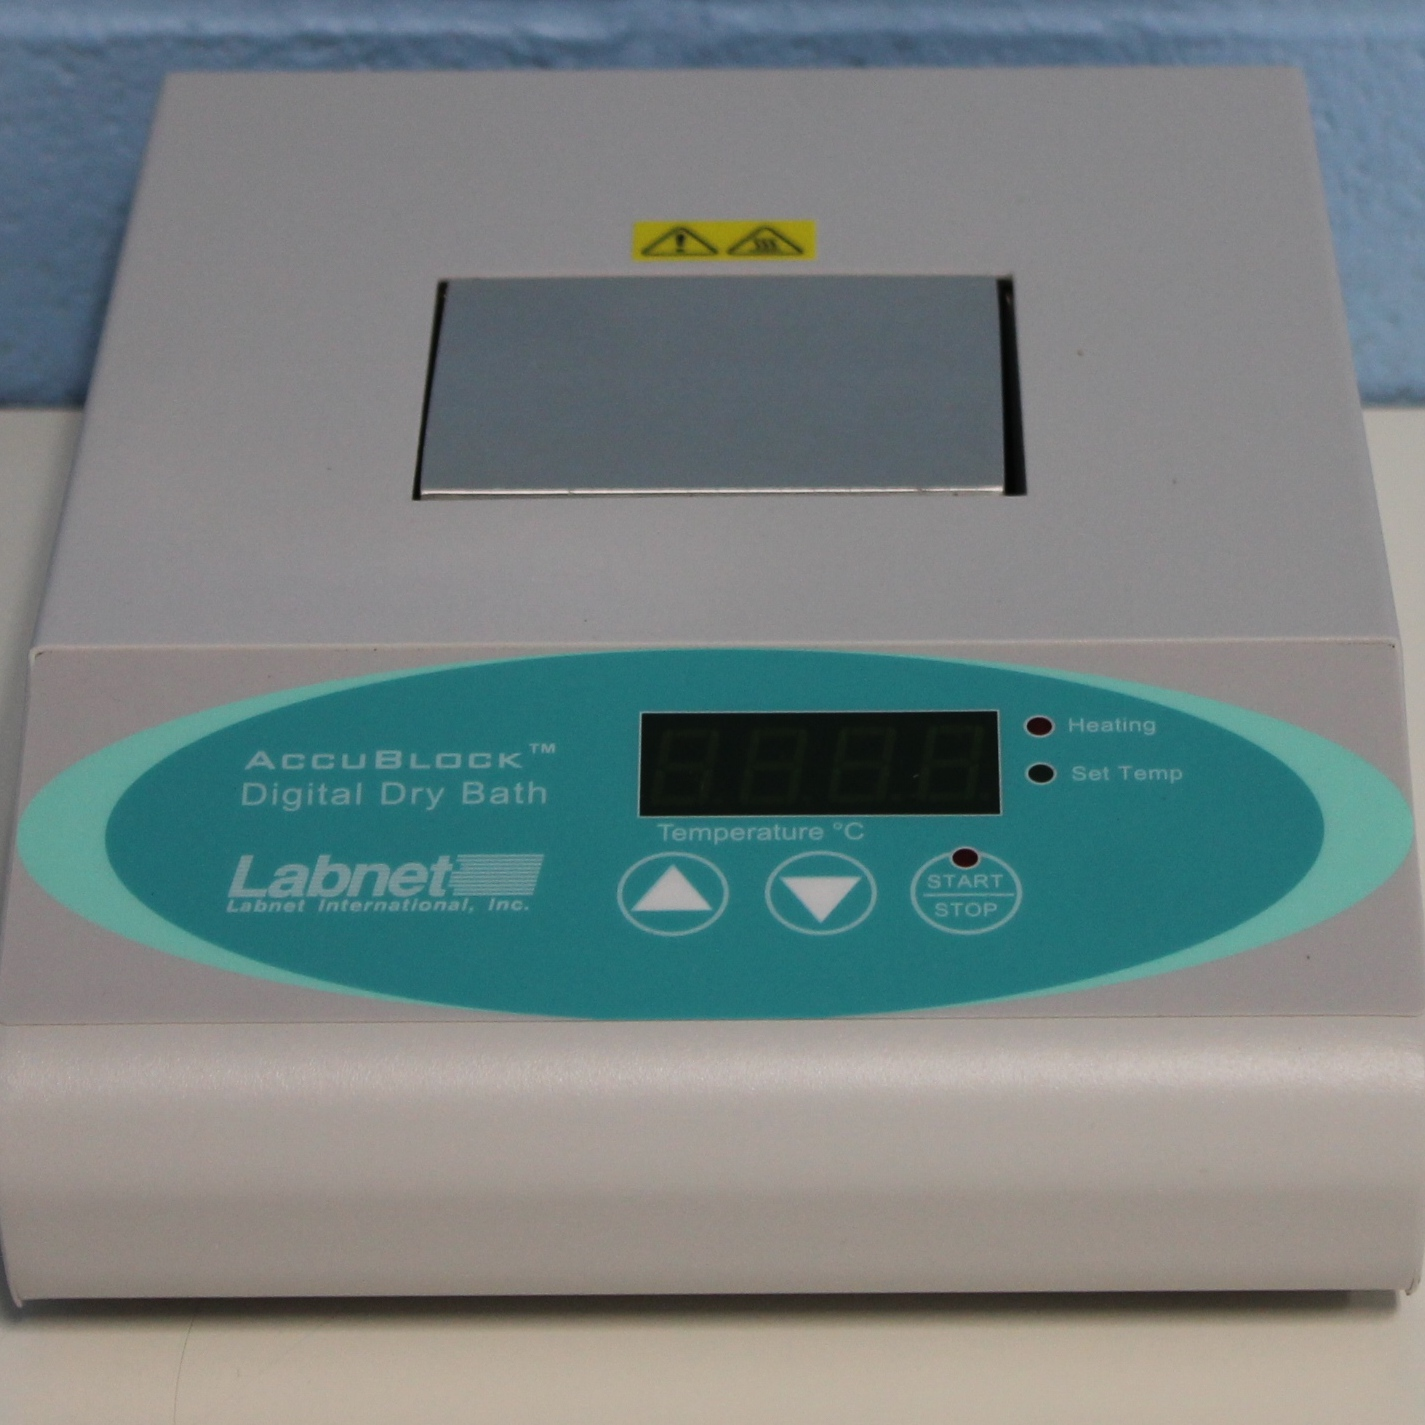 Labnet AccuBlock D1100 Digital Dry Bath Image